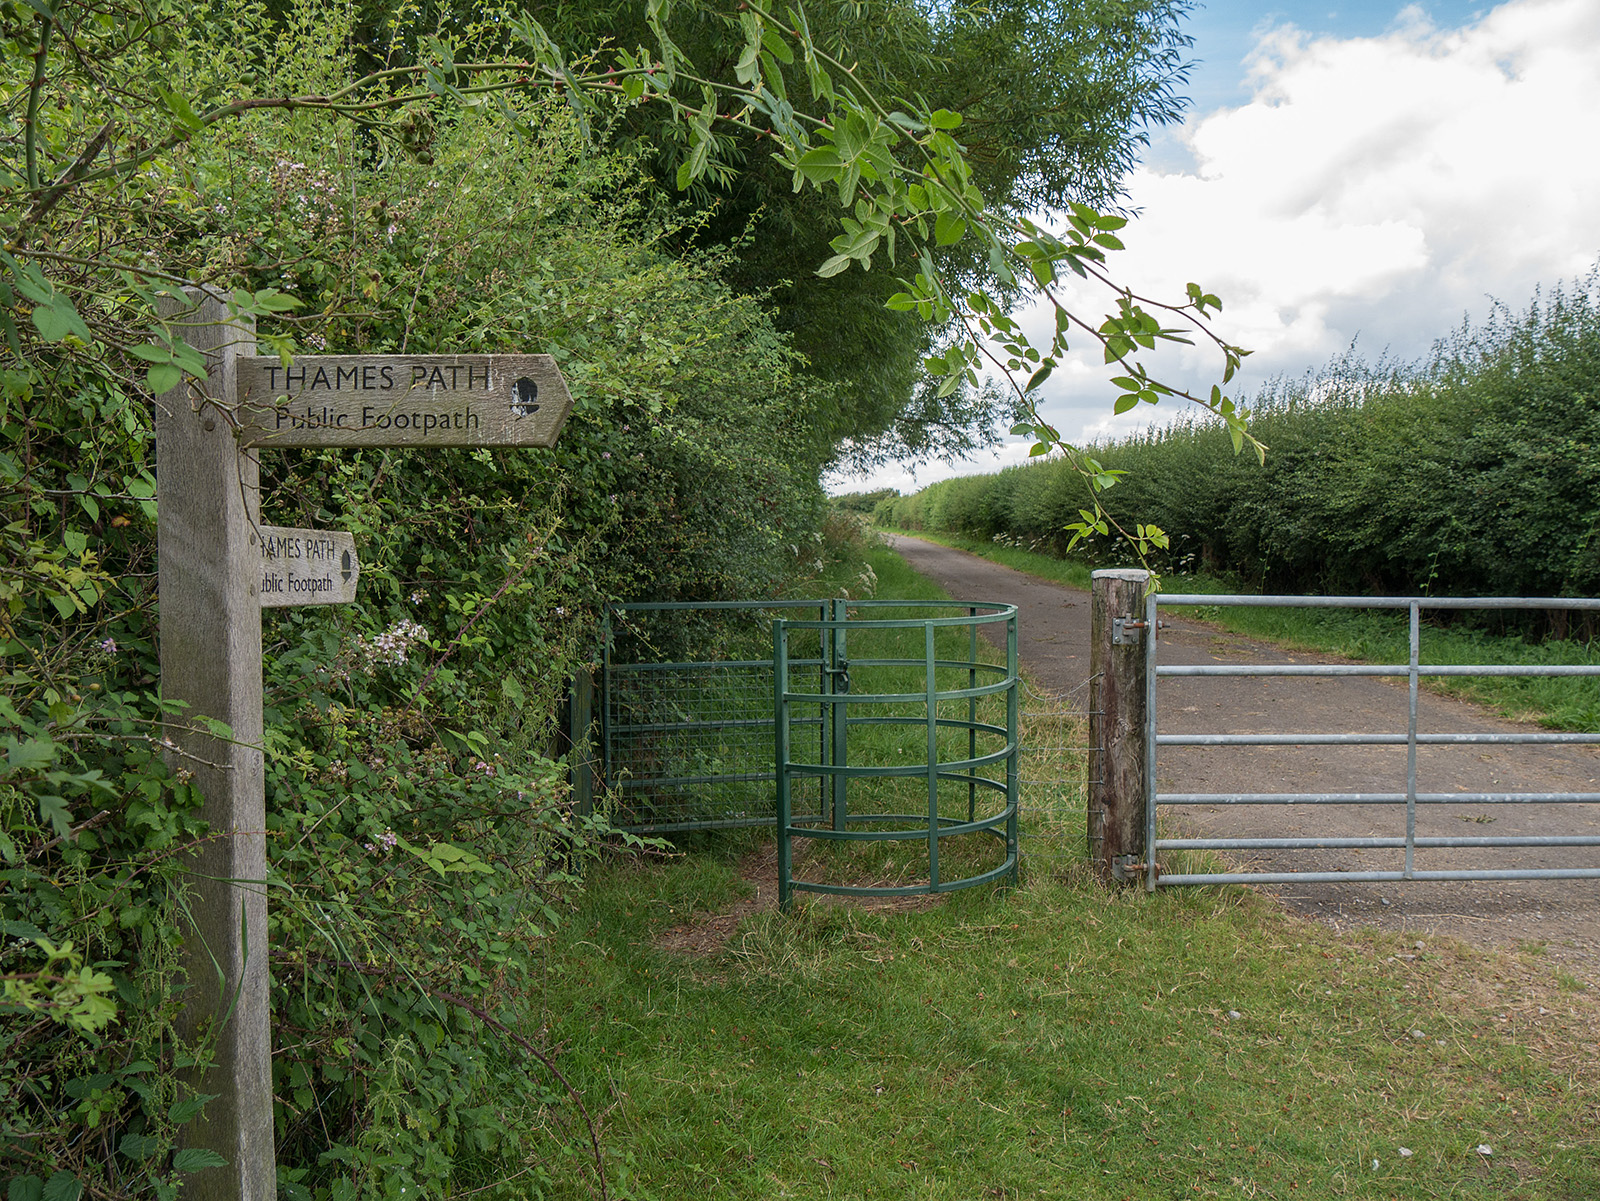 After a series of fields (to the right in this picture) the path reaches a tarmac road via a kissing gate